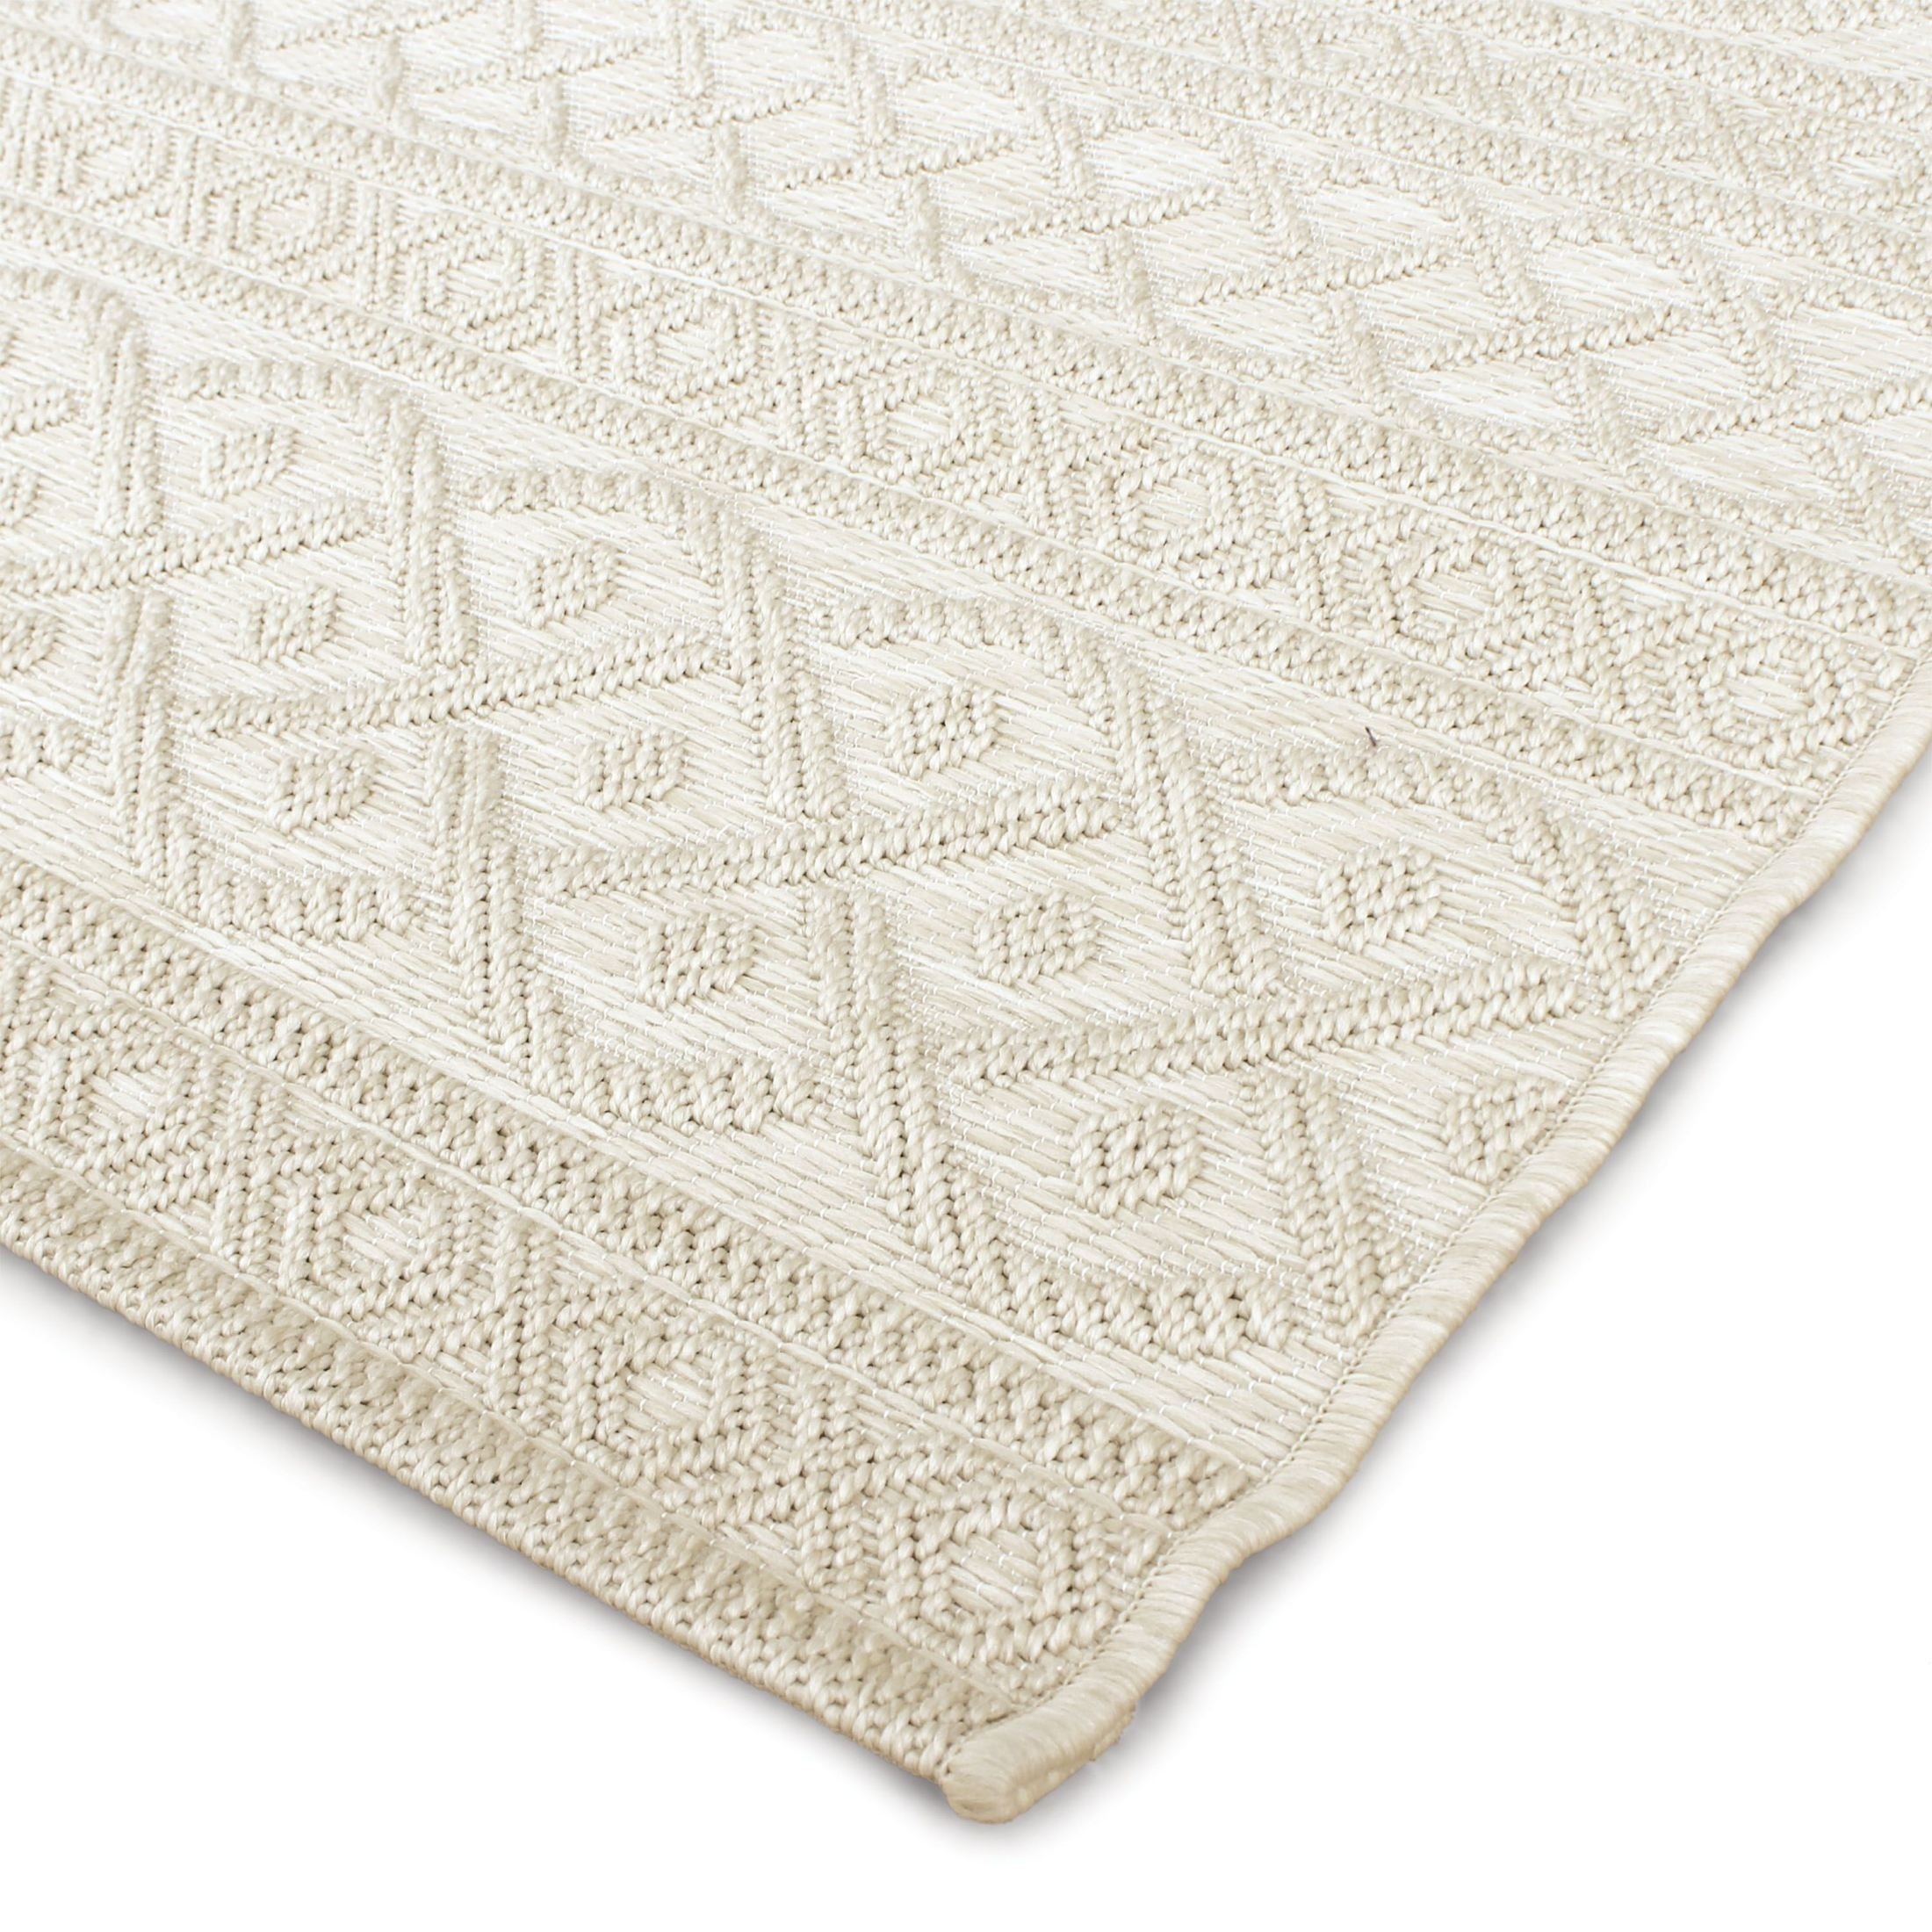 Orian Rugs Indoor Outdoor Knit Organic Cable ivory Area